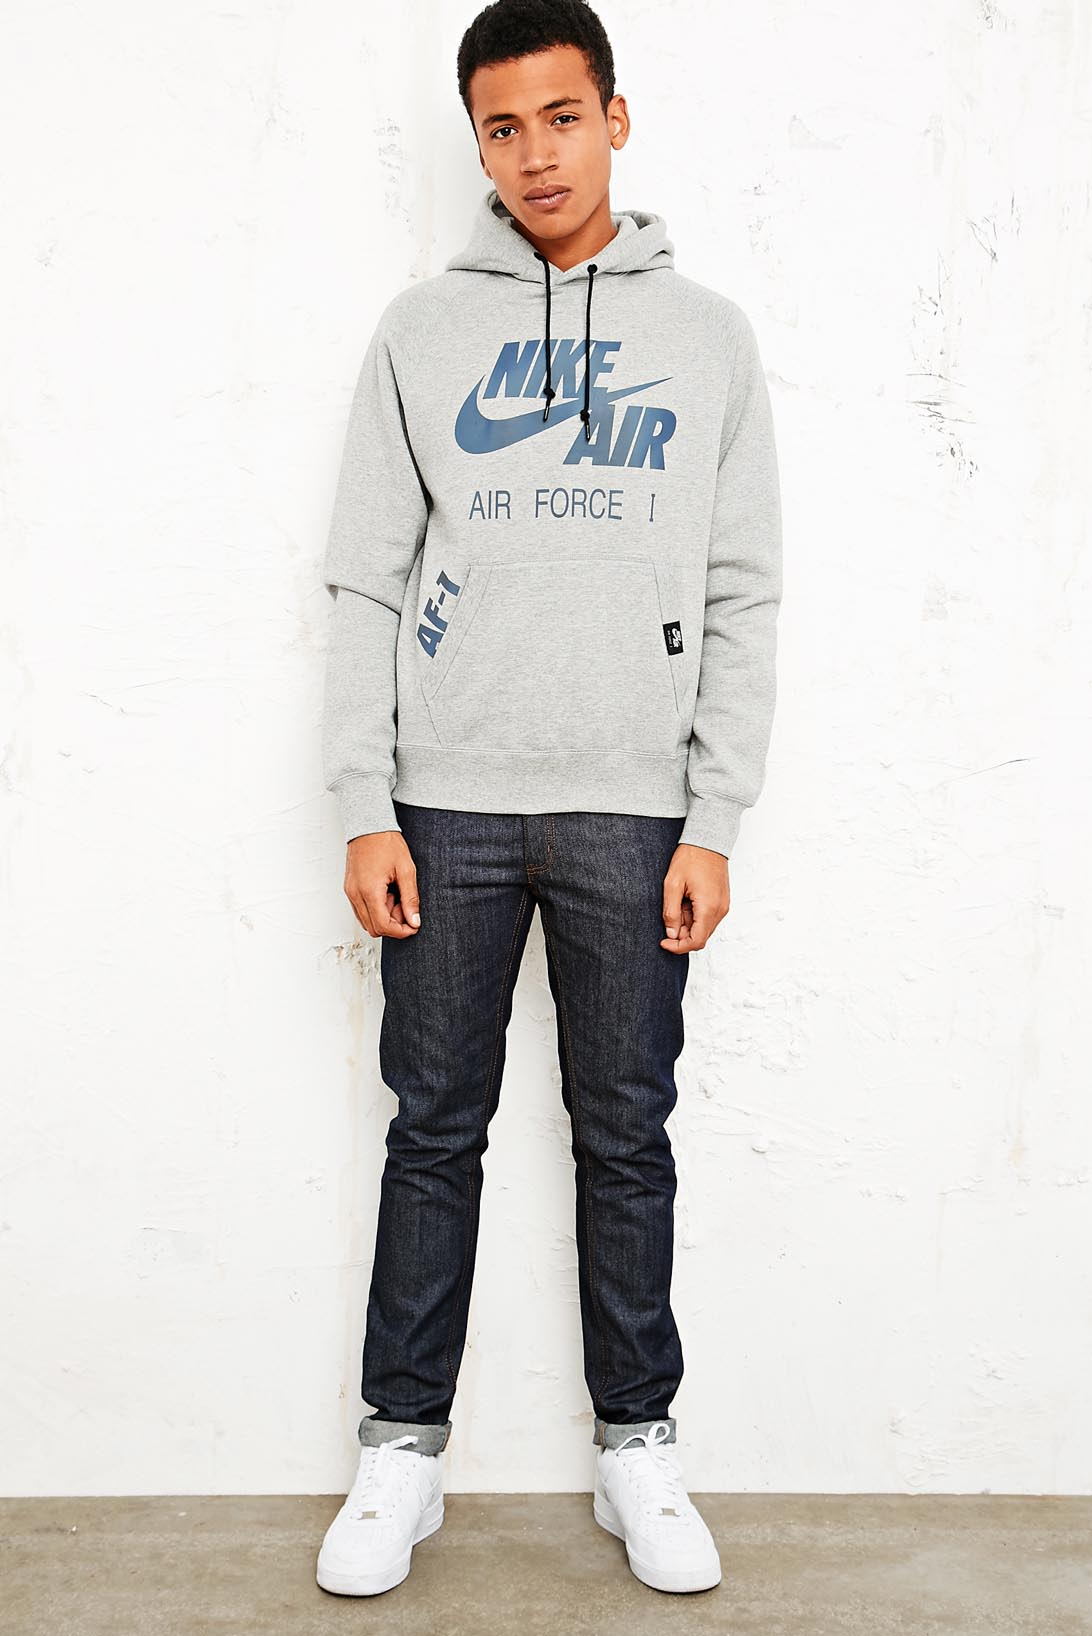 39a4b896 Nike Air Force 1 Pullon Hoodie in Gray for Men - Lyst